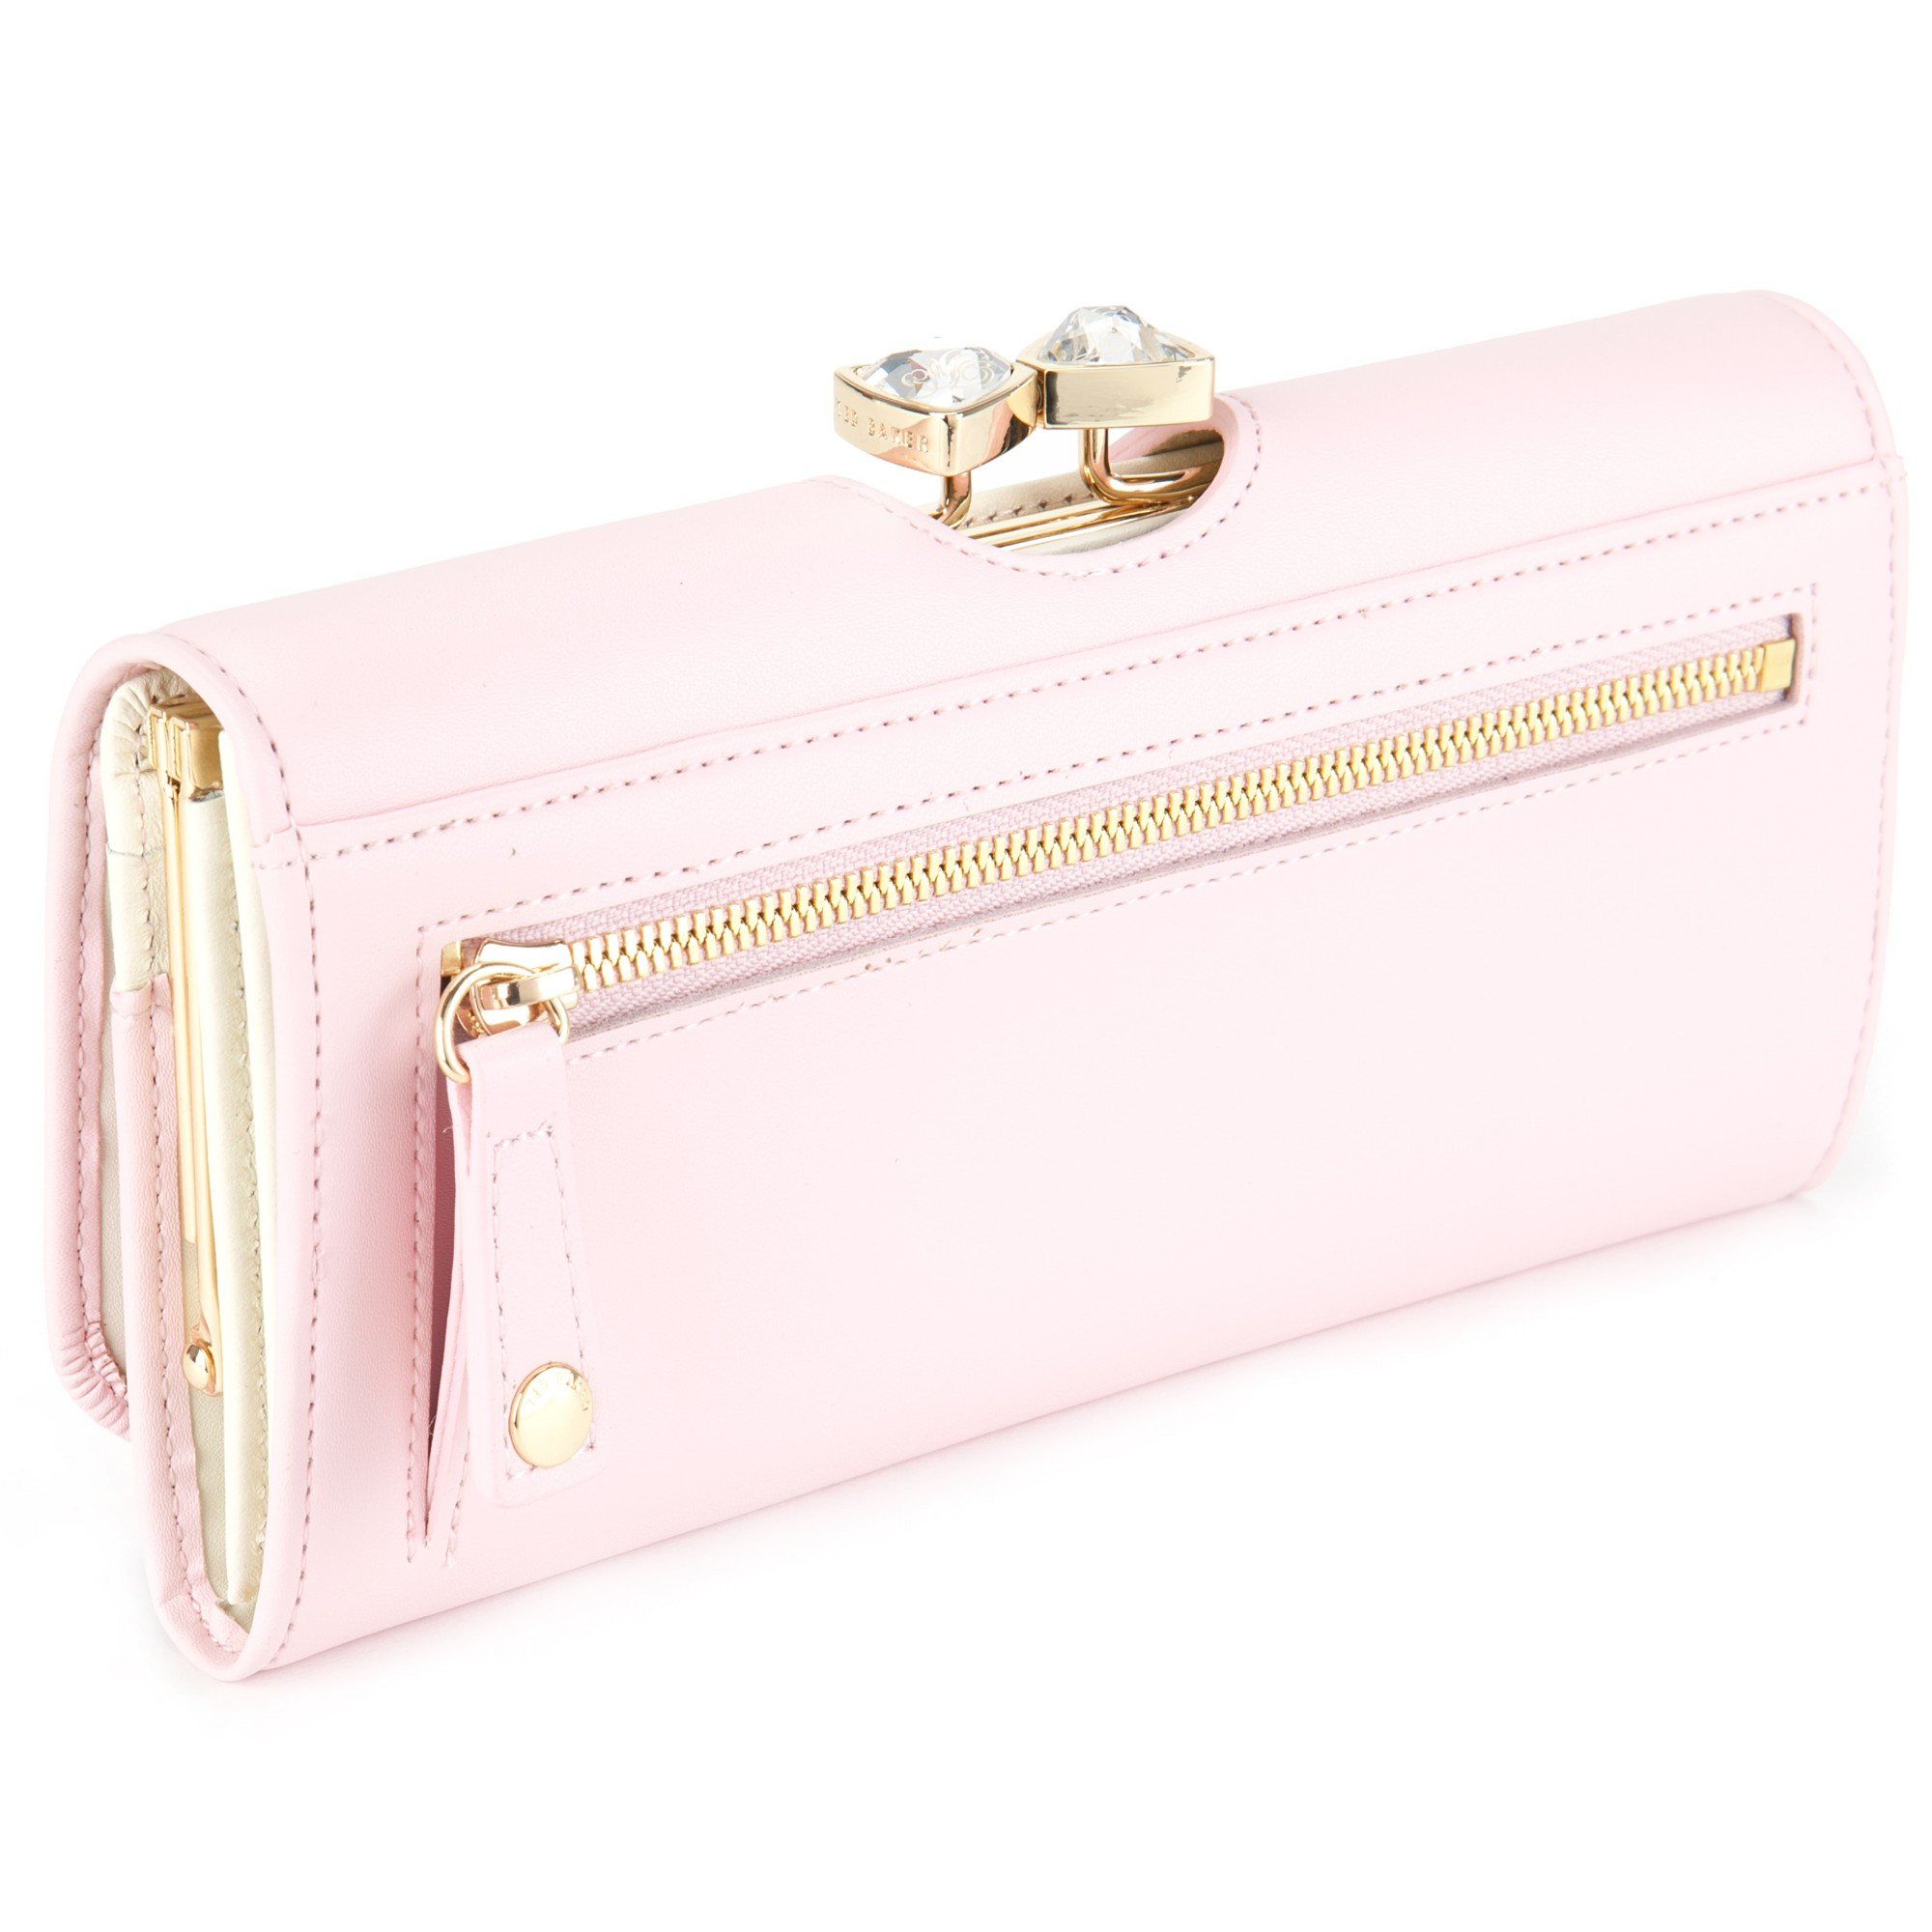 64d1c39ef91543 Ted Baker Caleena Jewelled Bow Leather Matinee Purse in Pink - Lyst